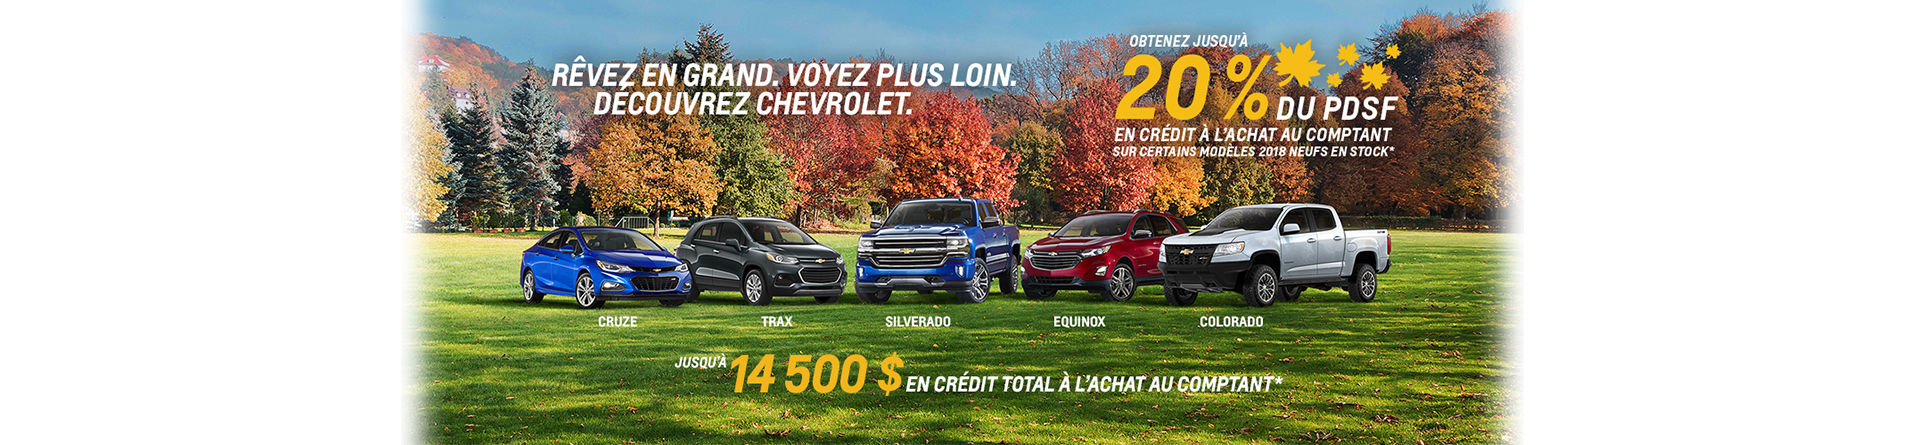 Promotion Chevrolet, repentigny